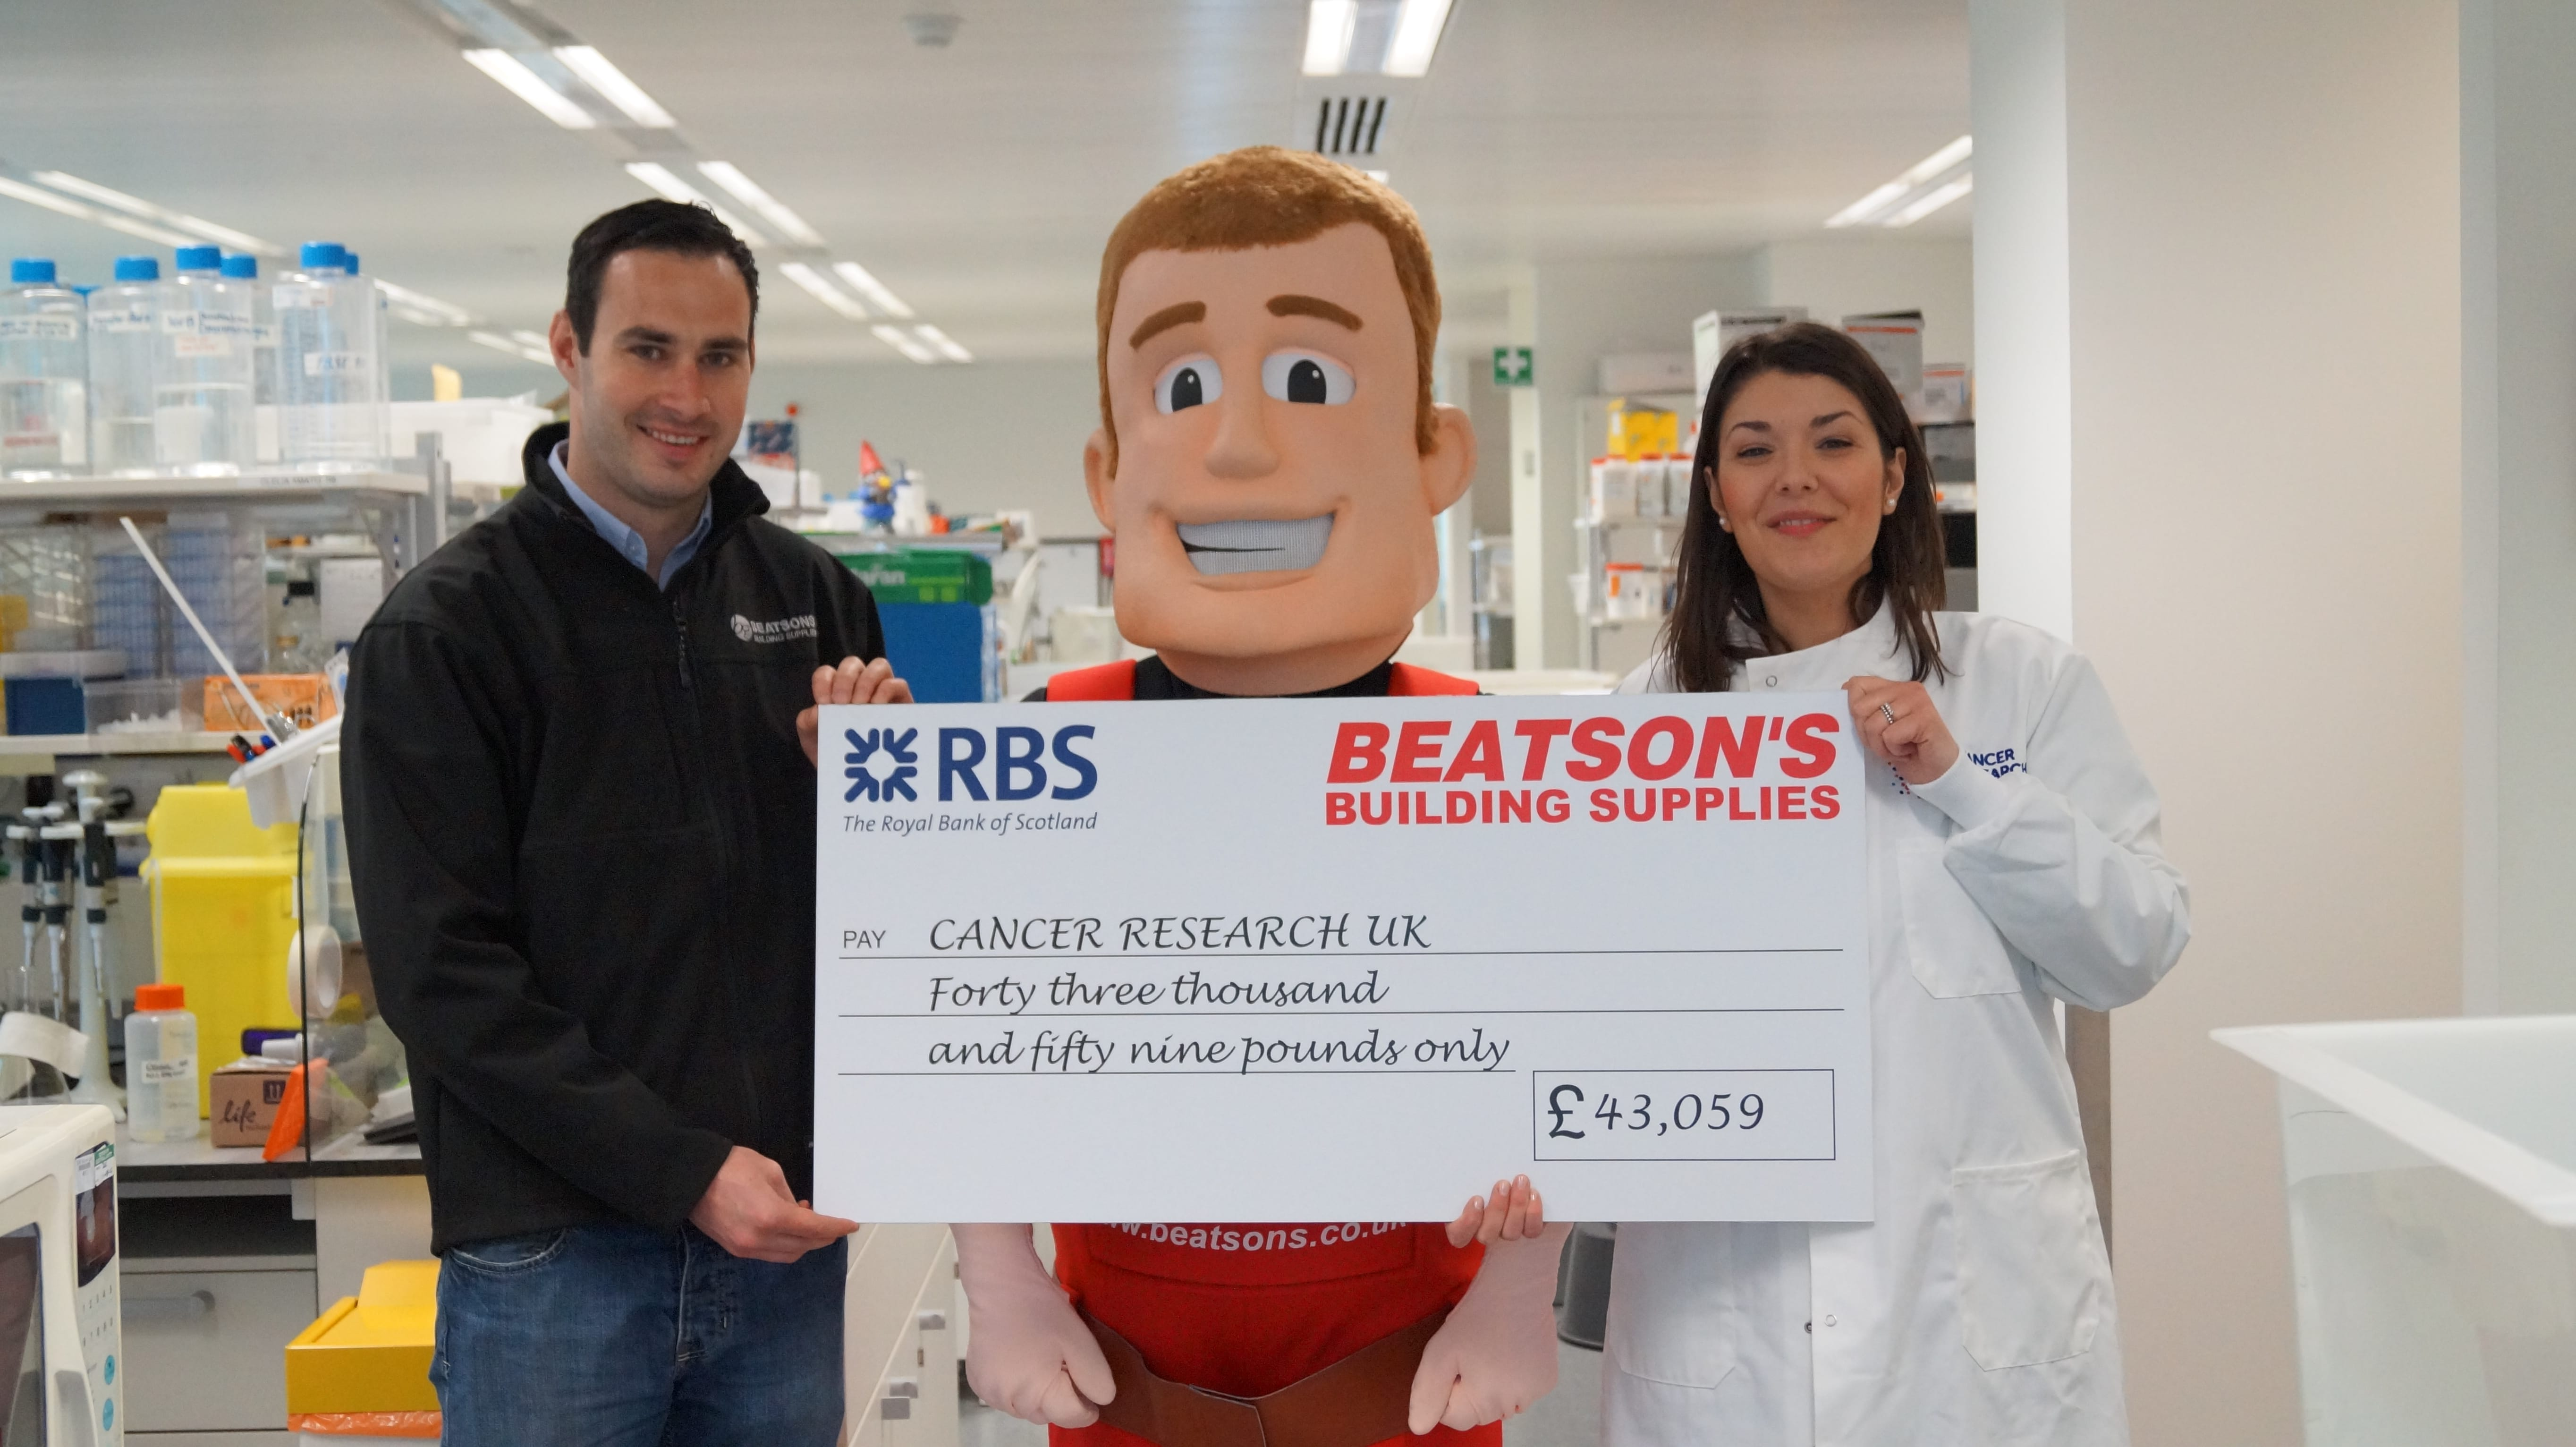 Beatson S Celebrate 163 43 000 Donation To Cancer Research Uk